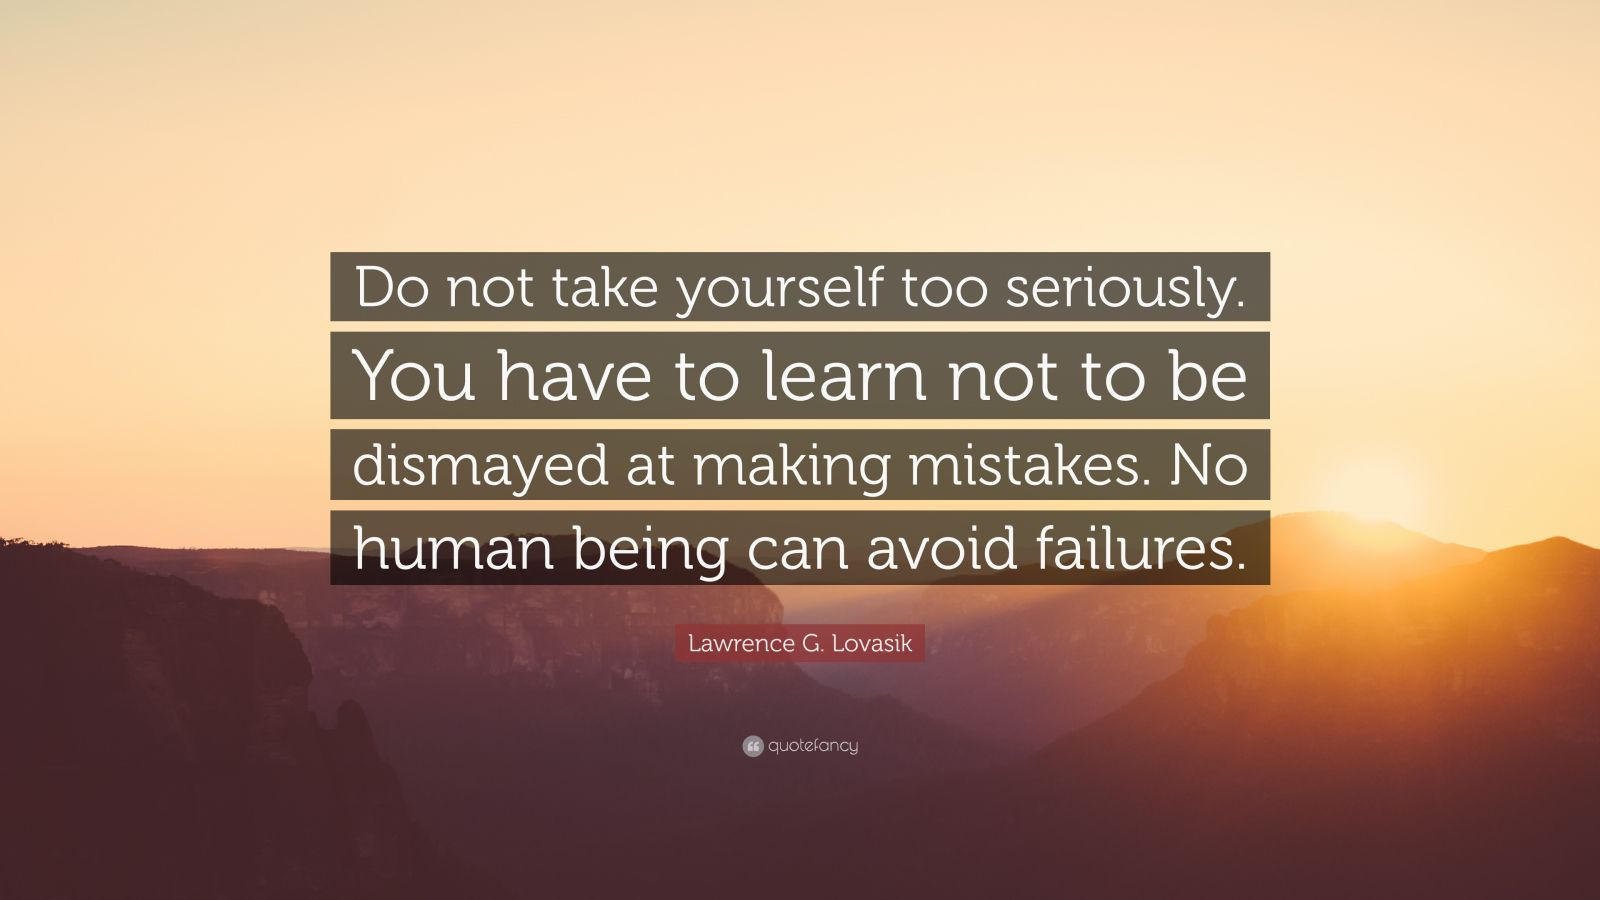 """Lawrence G. Lovasik Quote: """"Do not take yourself too seriously. You have to learn not to be dismayed at making mistakes. No human being can avoid failures."""""""